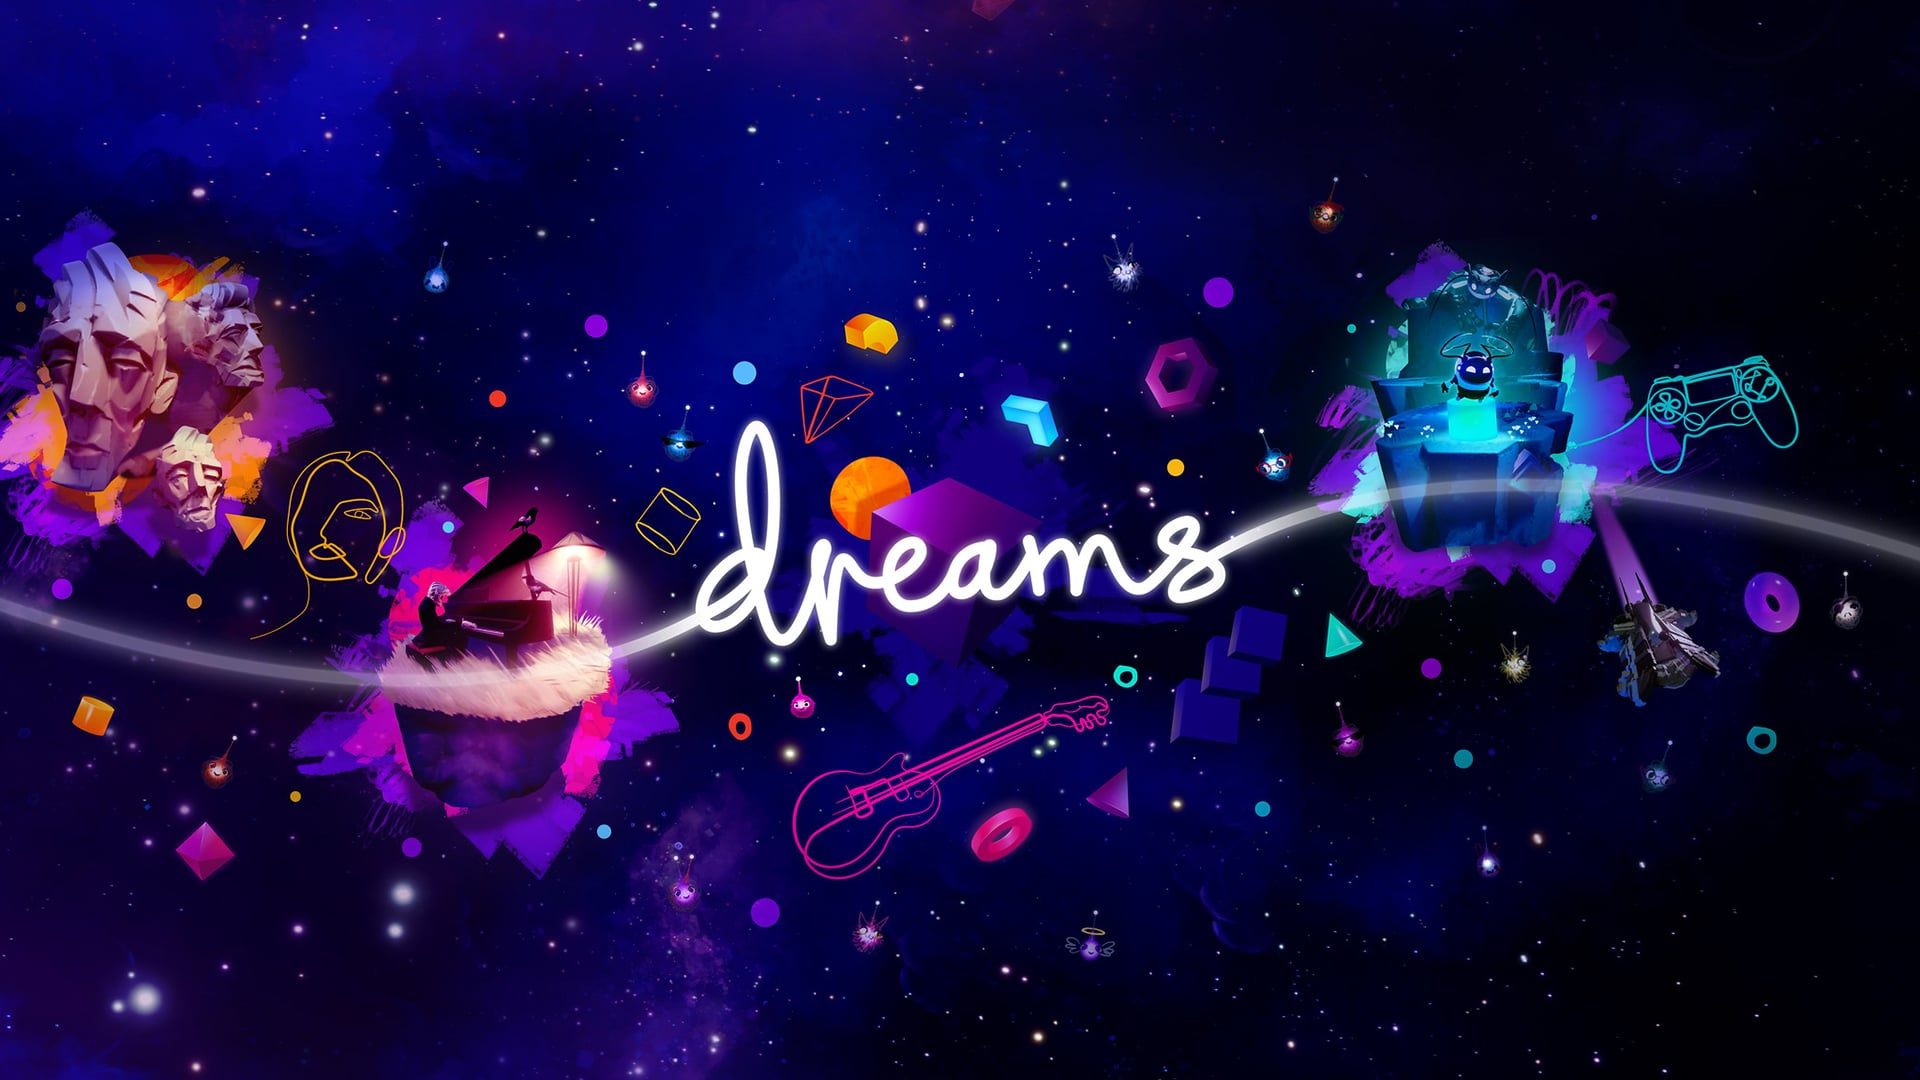 dreams featured image